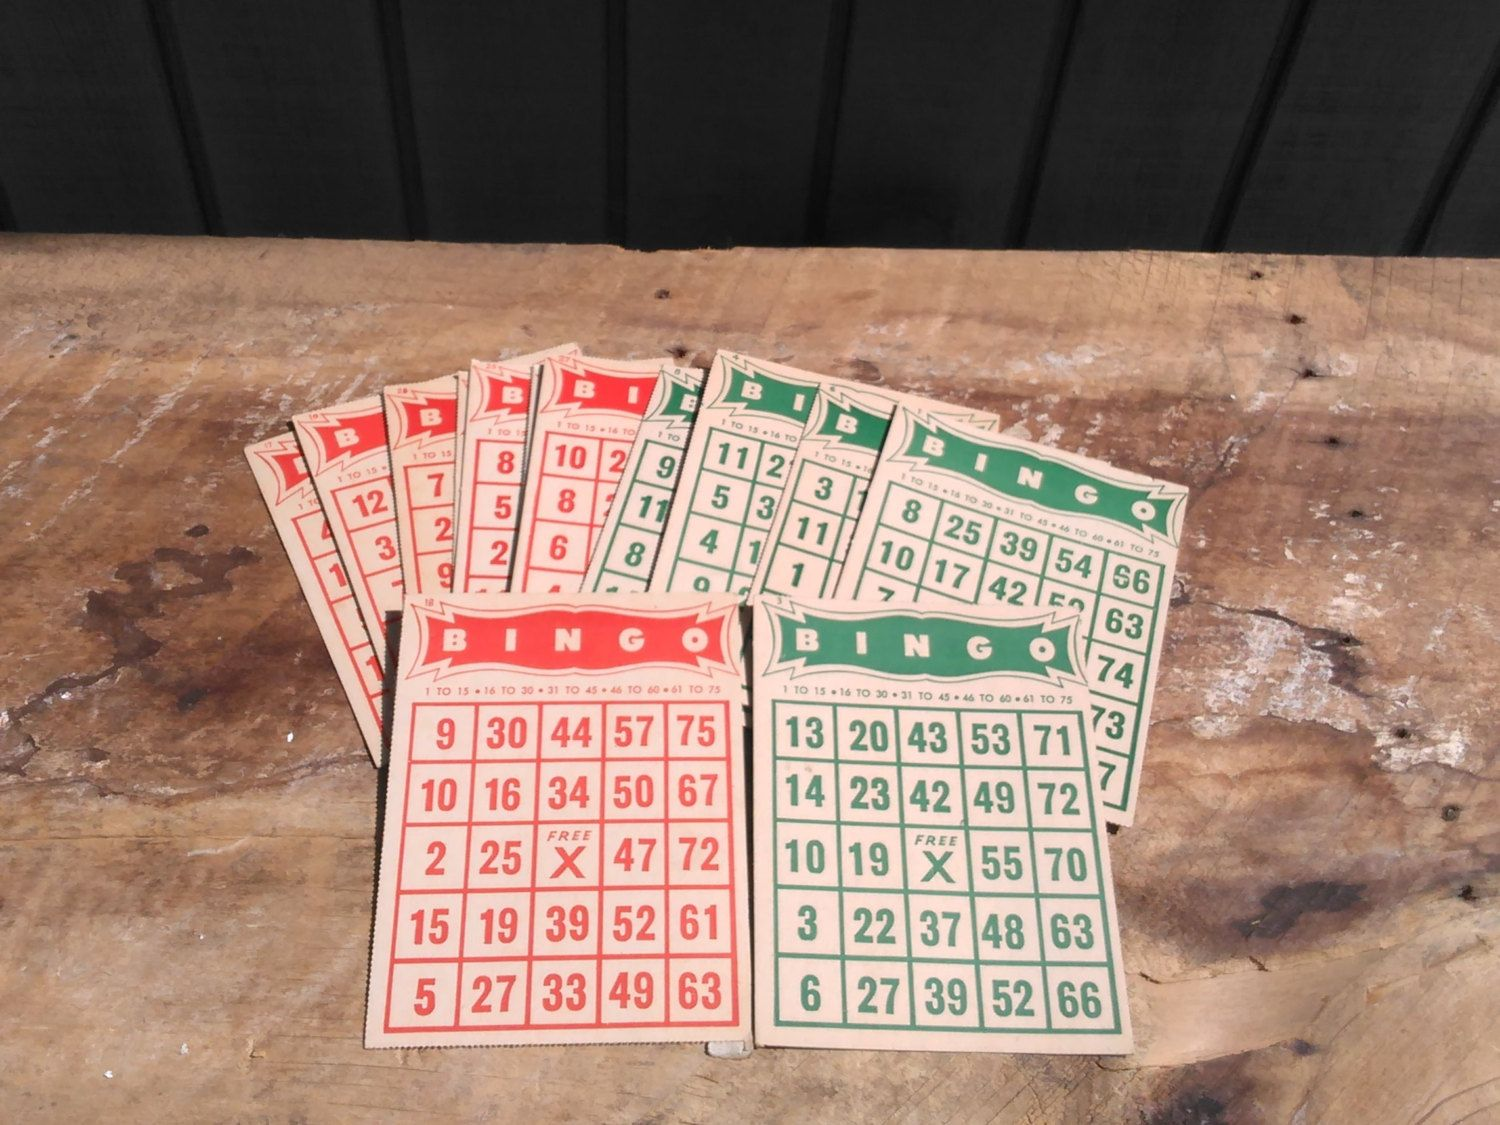 Bingo Cards - 15 Vintage Bingo Cards - Red & Green Bingo Cards by…